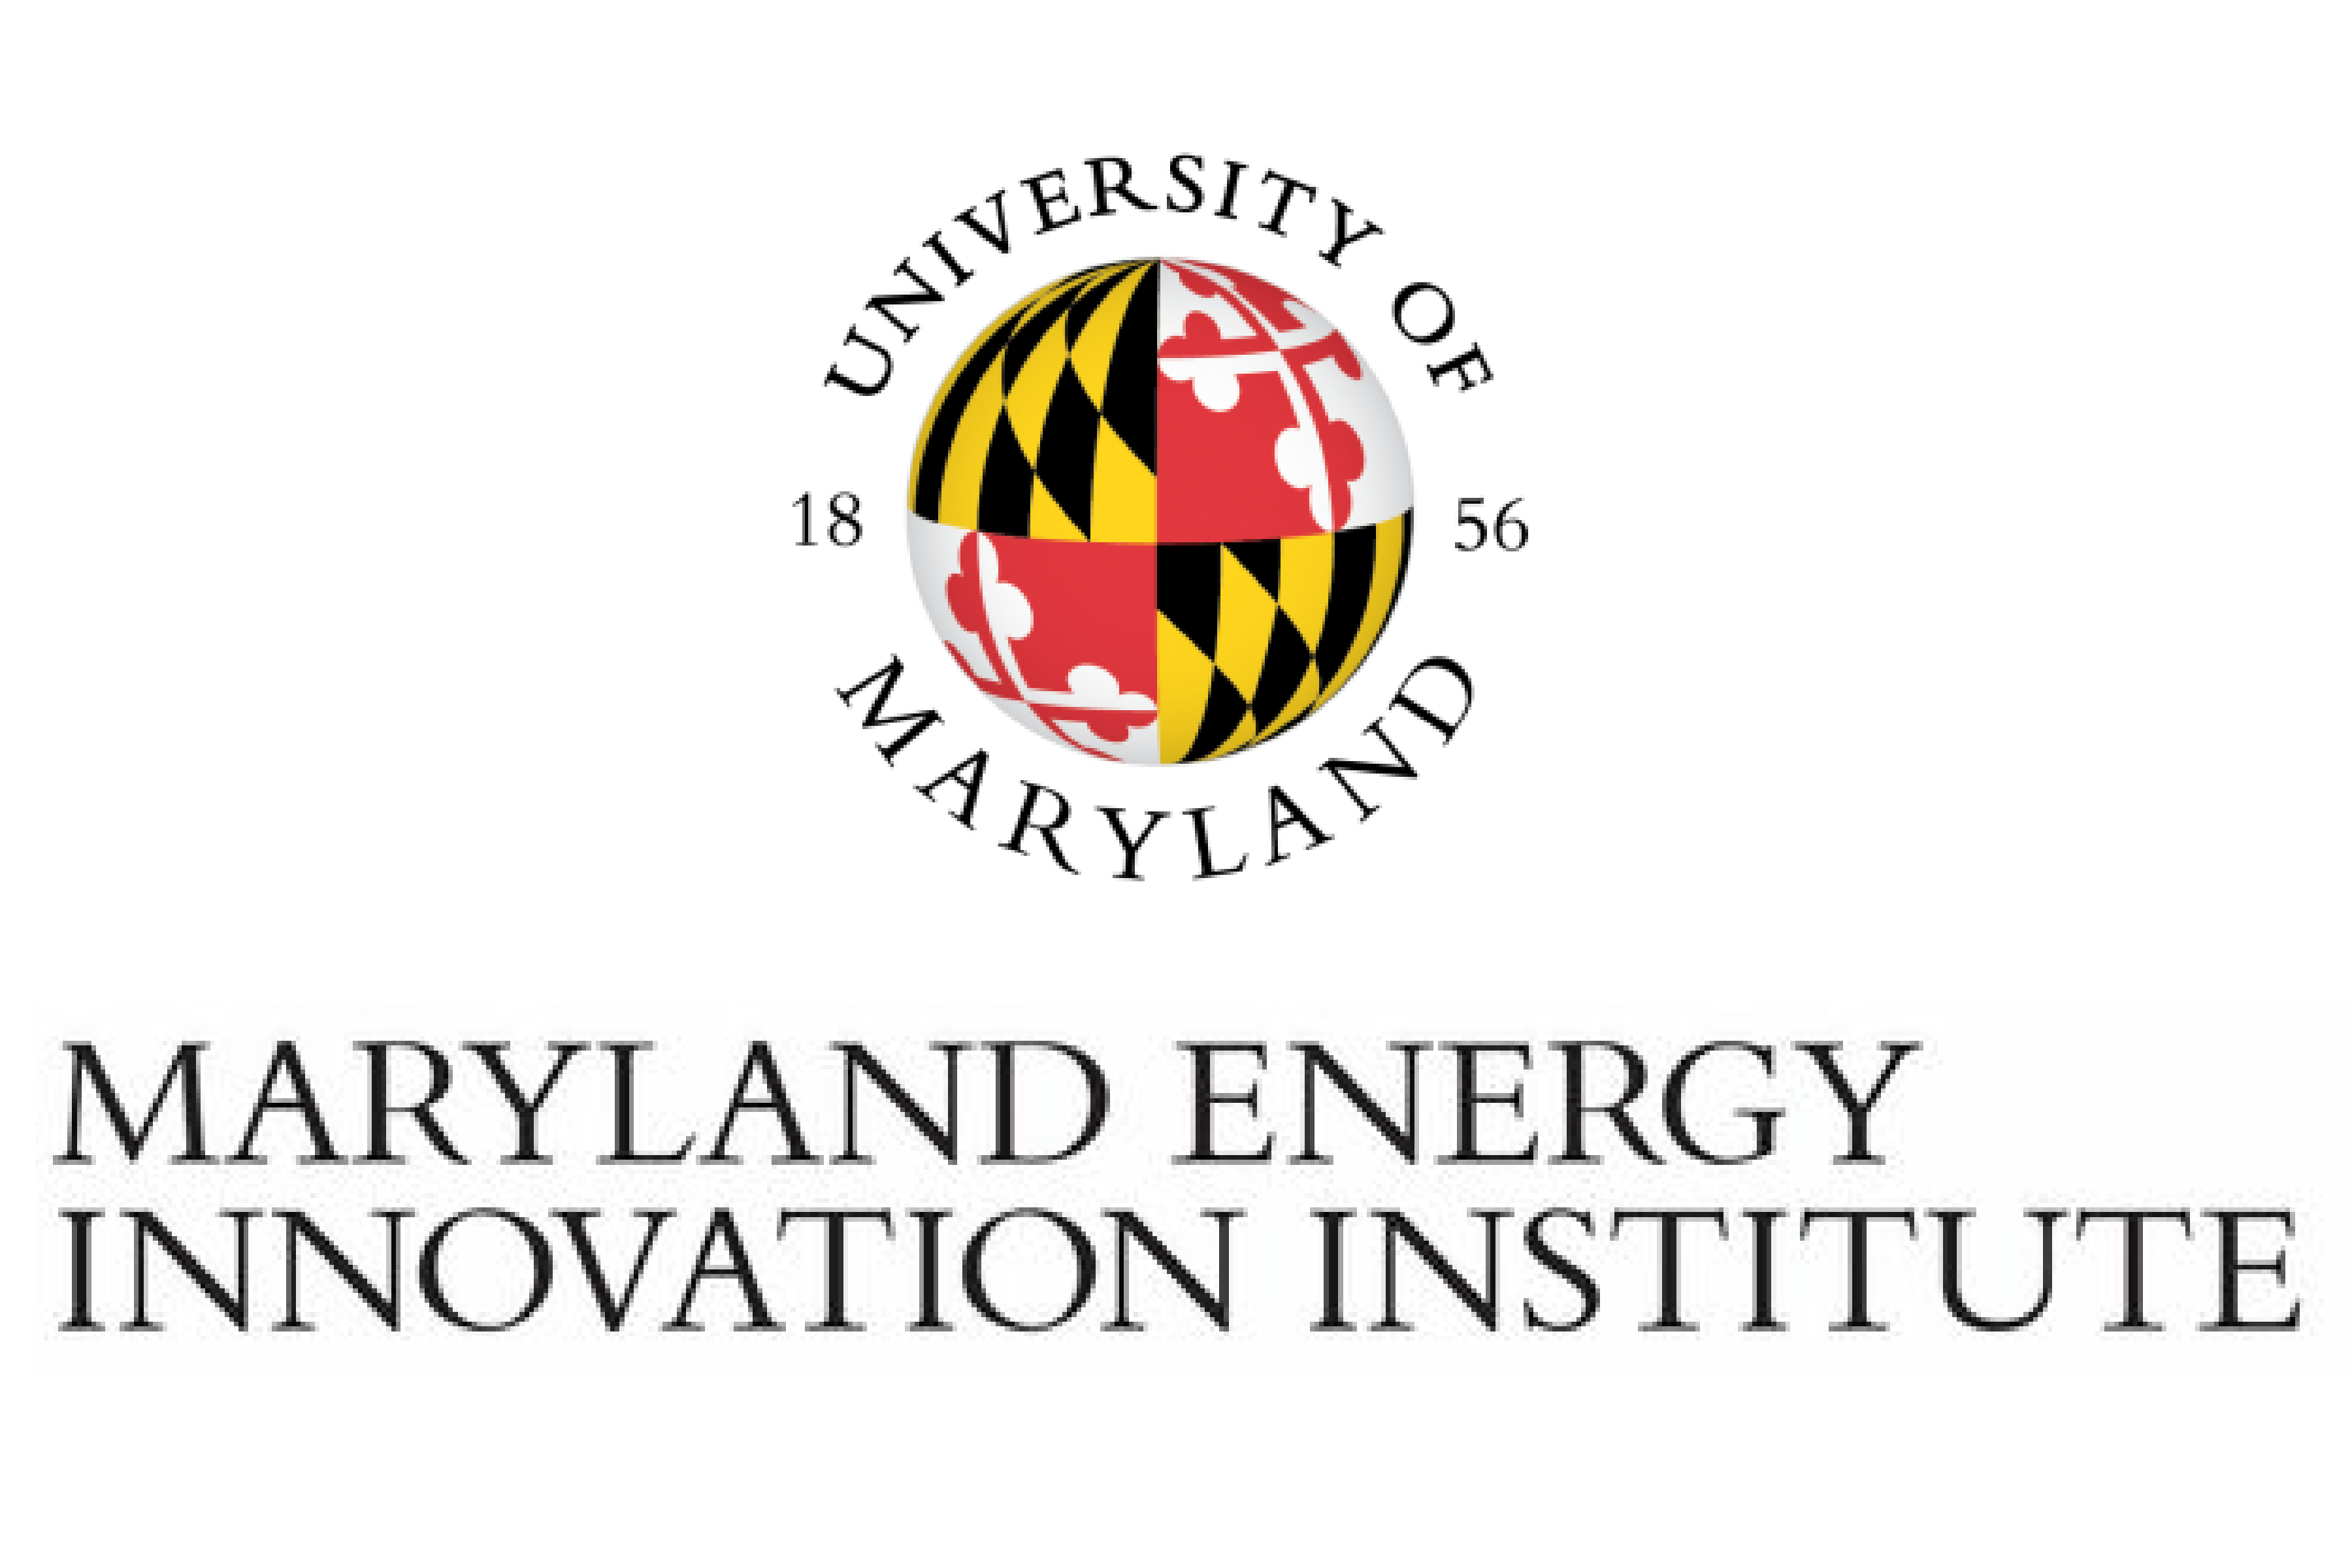 Maryland Energy Innovation Institute